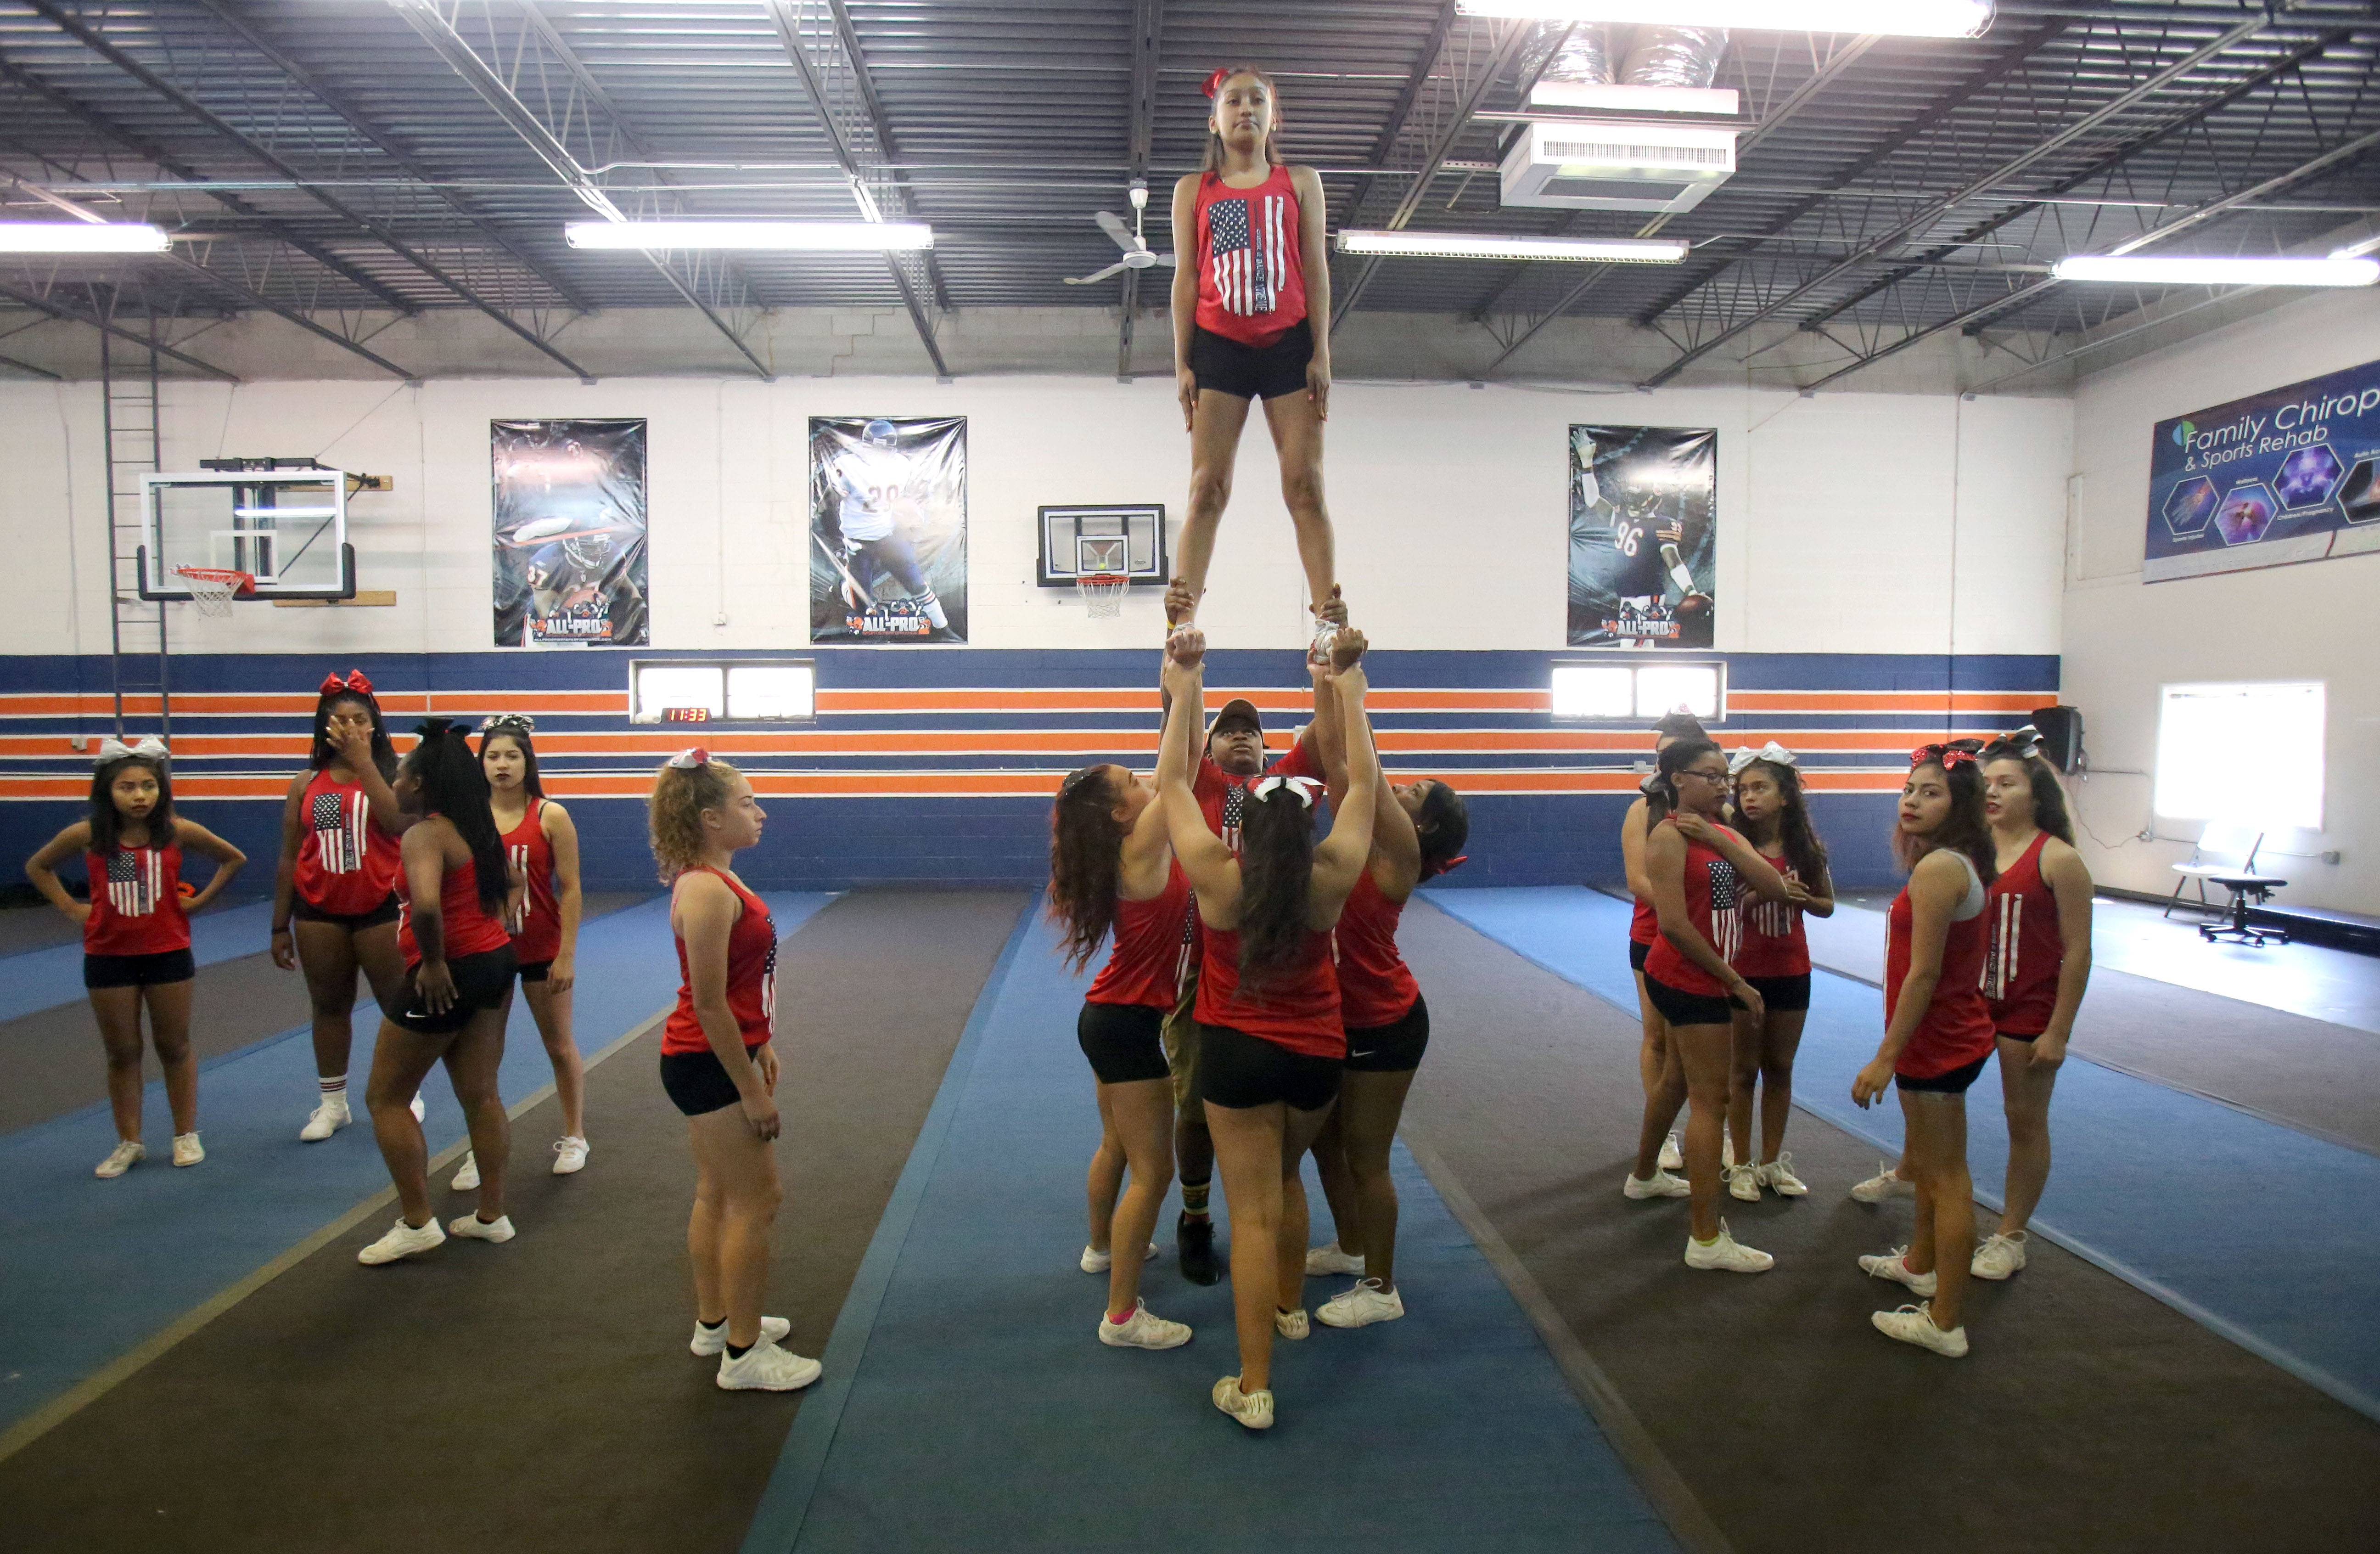 Gurnee-based cheerleading group invited to Macy's parade struggle to pay for trip